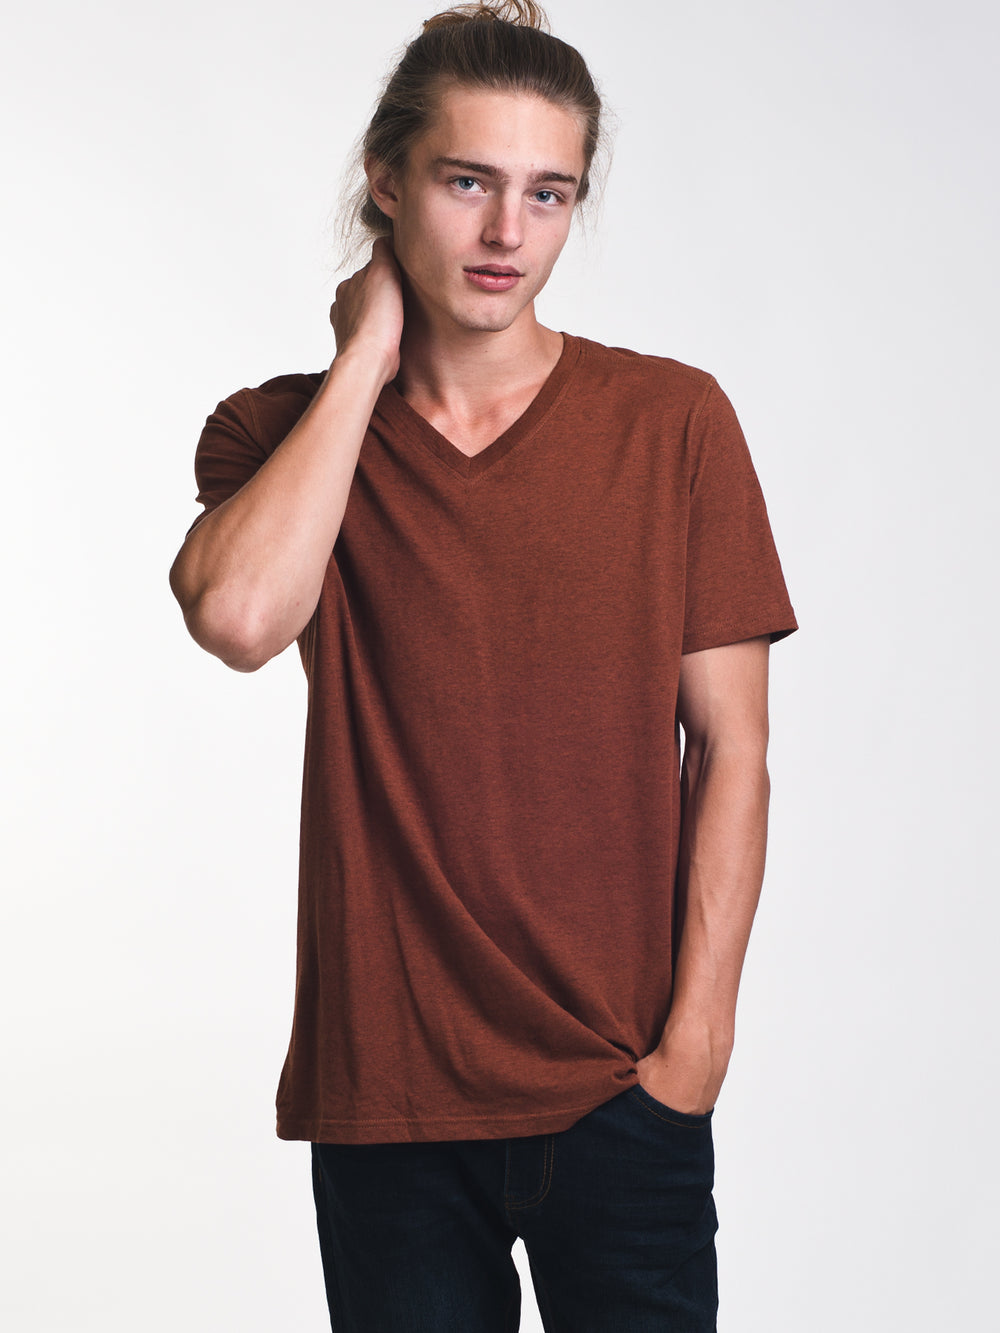 MENS VICTOR VNECK T - RUST - CLEARANCE